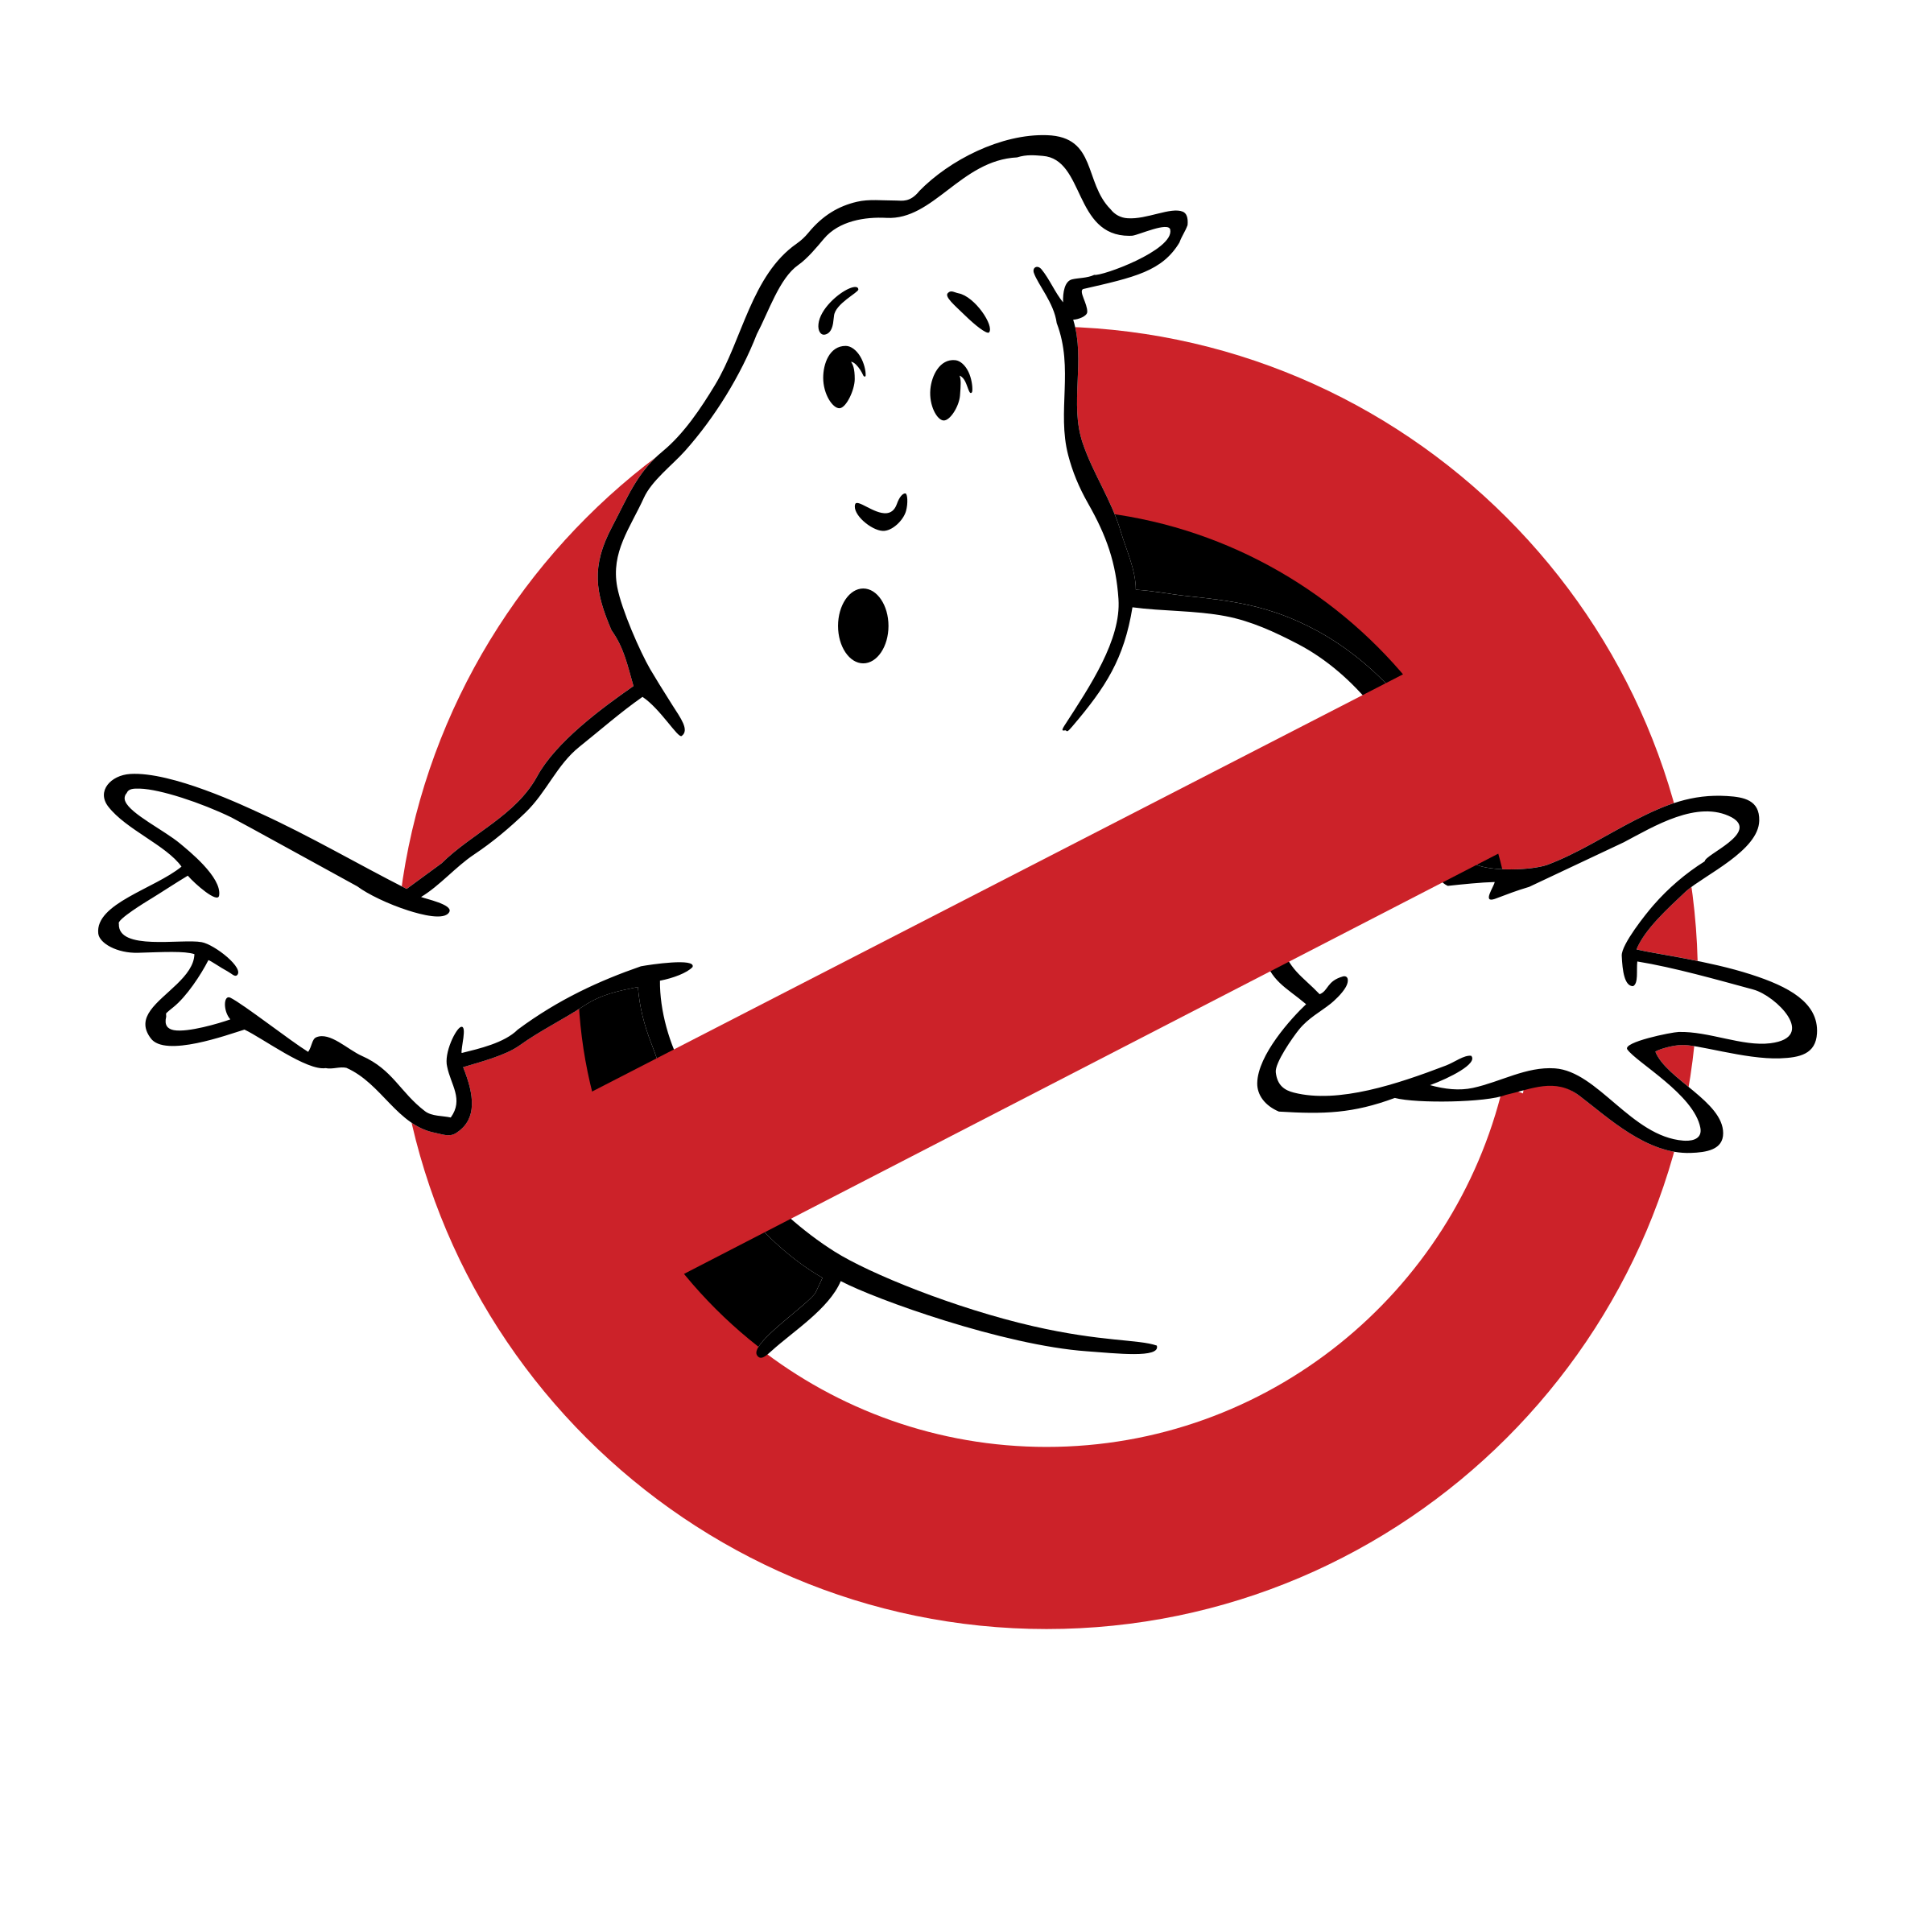 Pin by E. ABHAT RAMIREZ on Ghostbusters halloween ...